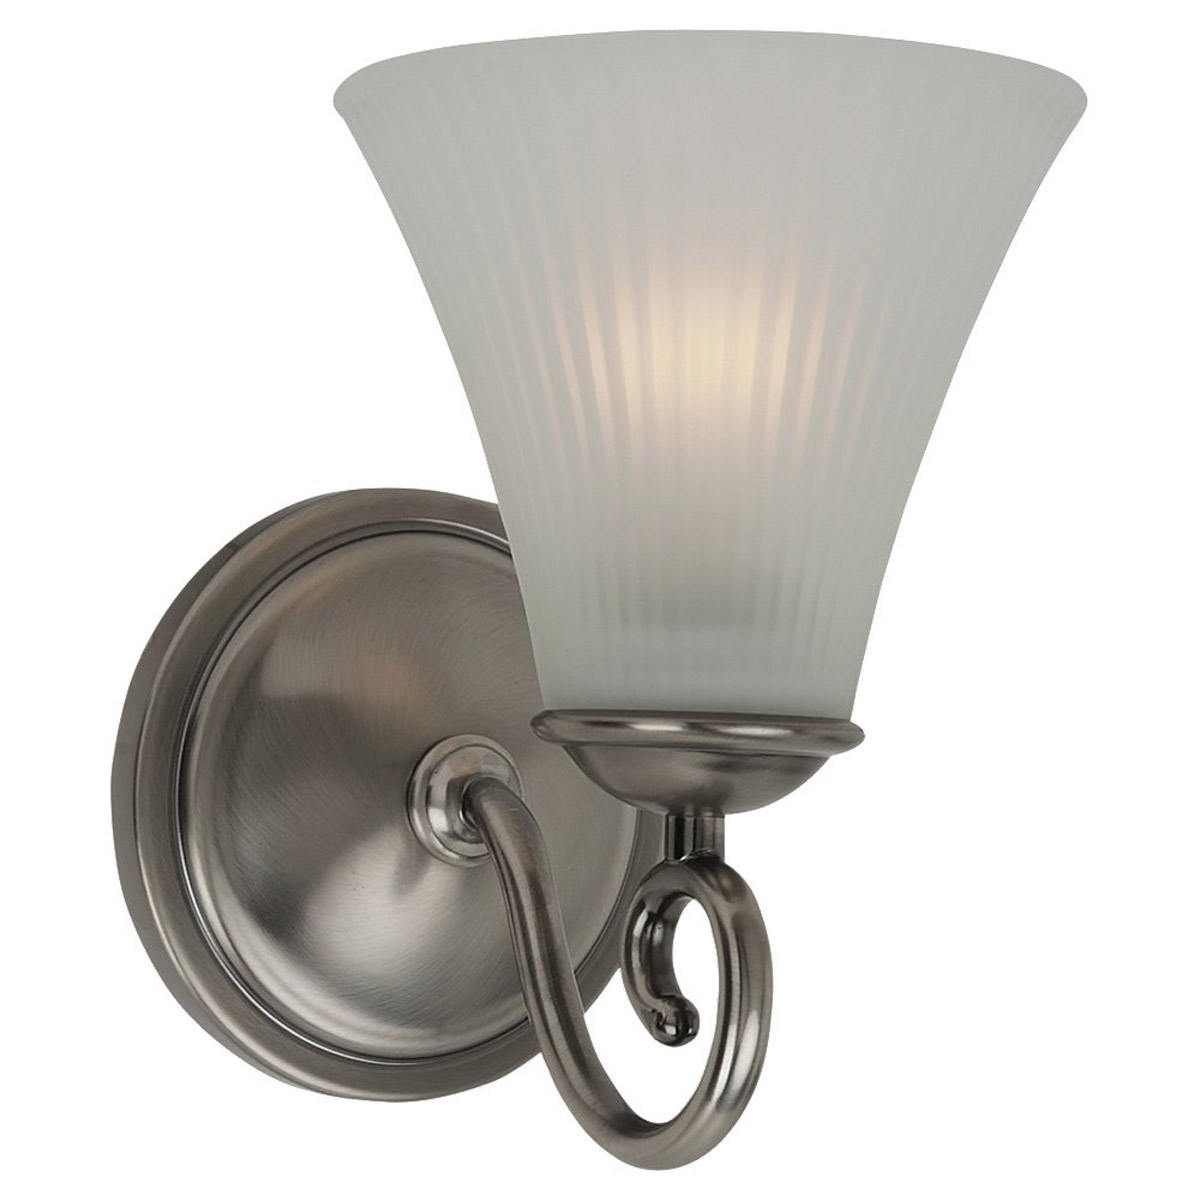 Sea Gull Lighting Joliet 1 Light Bath Vanity in Antique Brushed Nickel 44935-965 photo